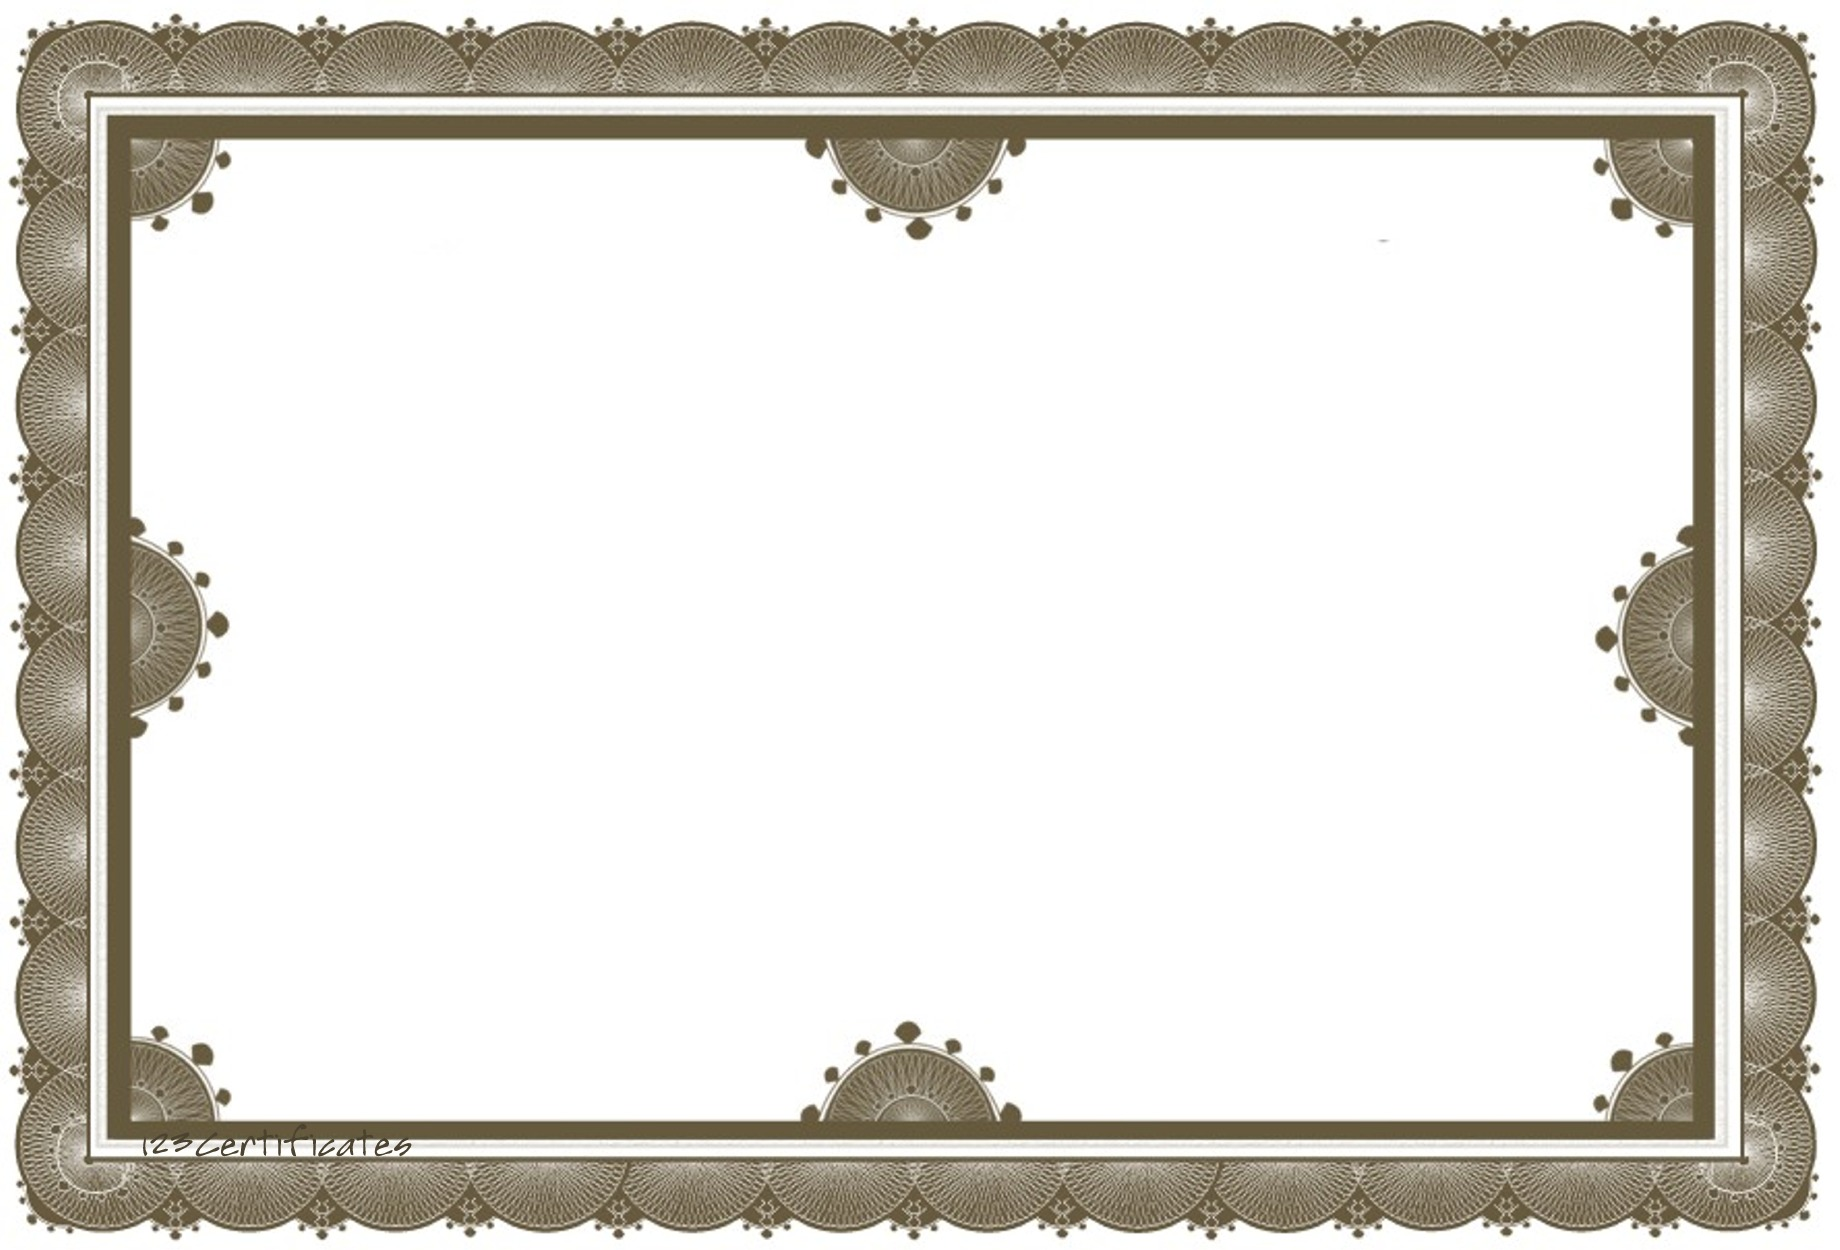 Free Award Certificate Border Templates